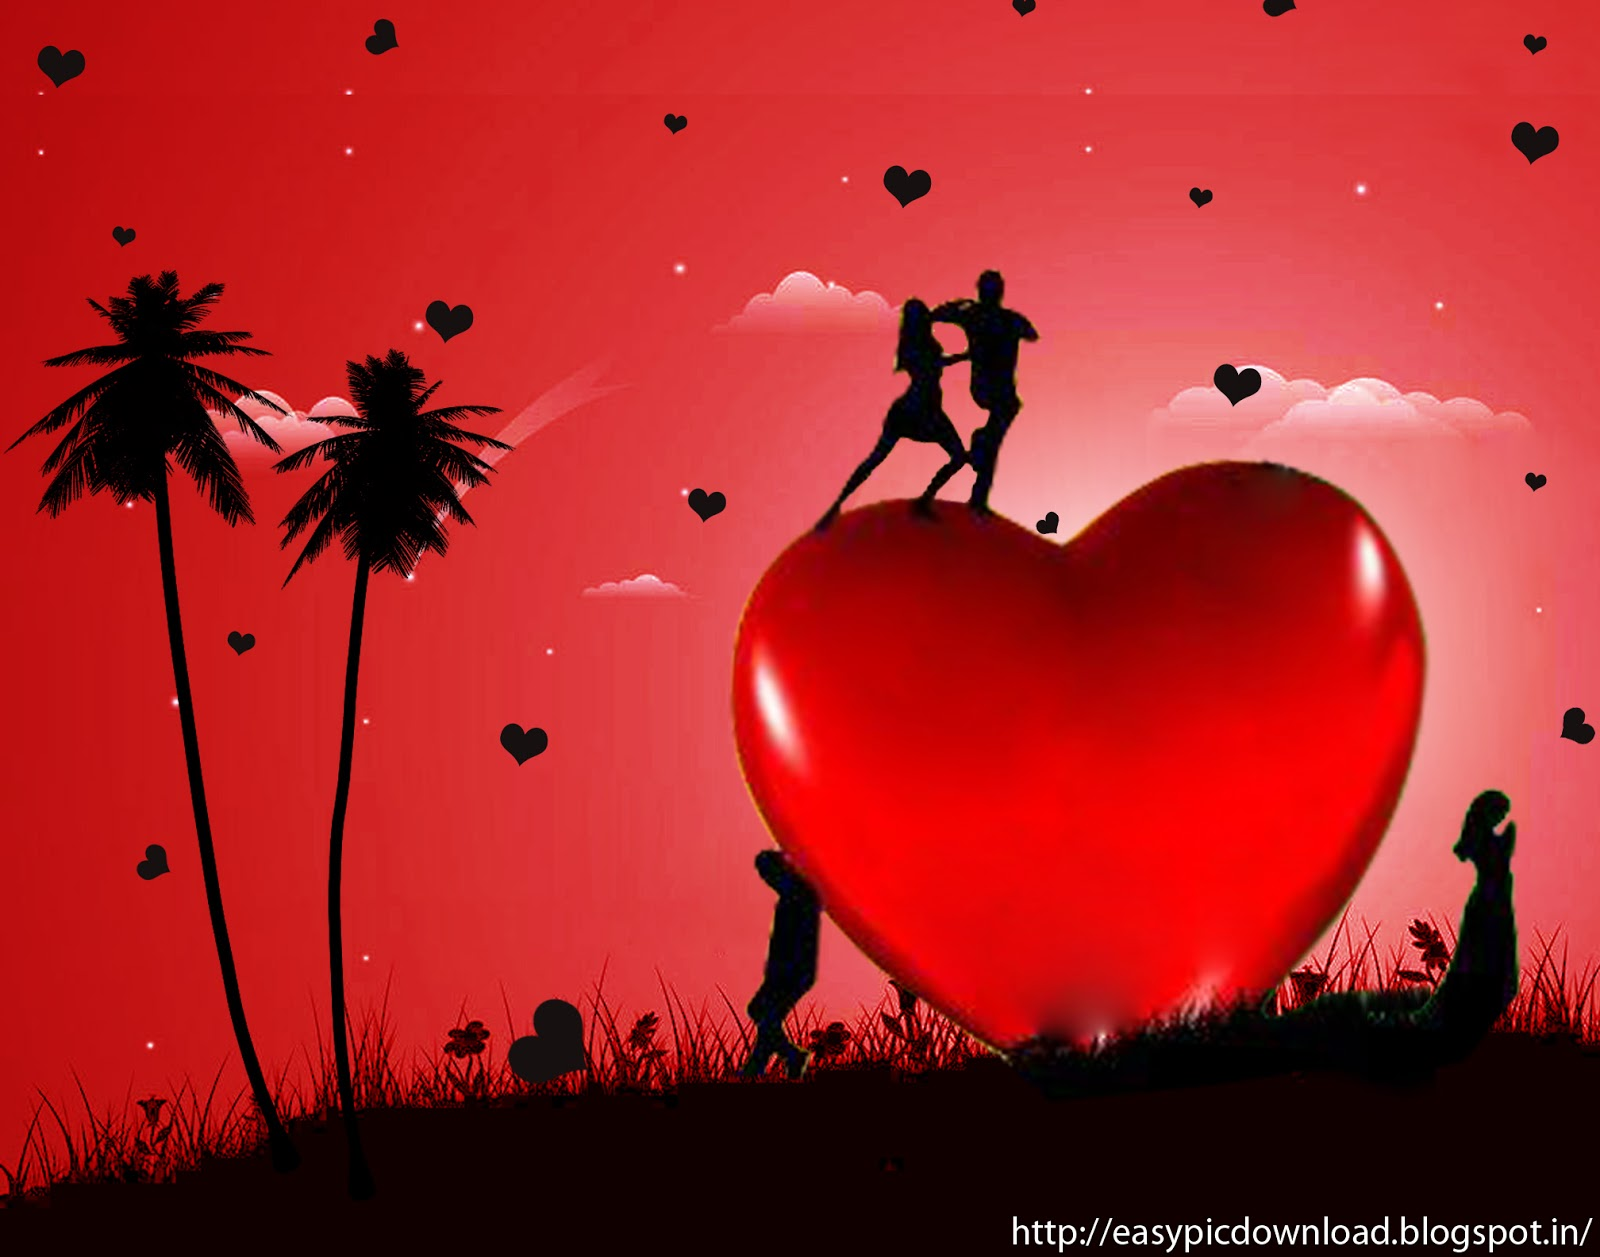 Wallpaper Love Each Other : Love Wallpapers - Easy Pic Download